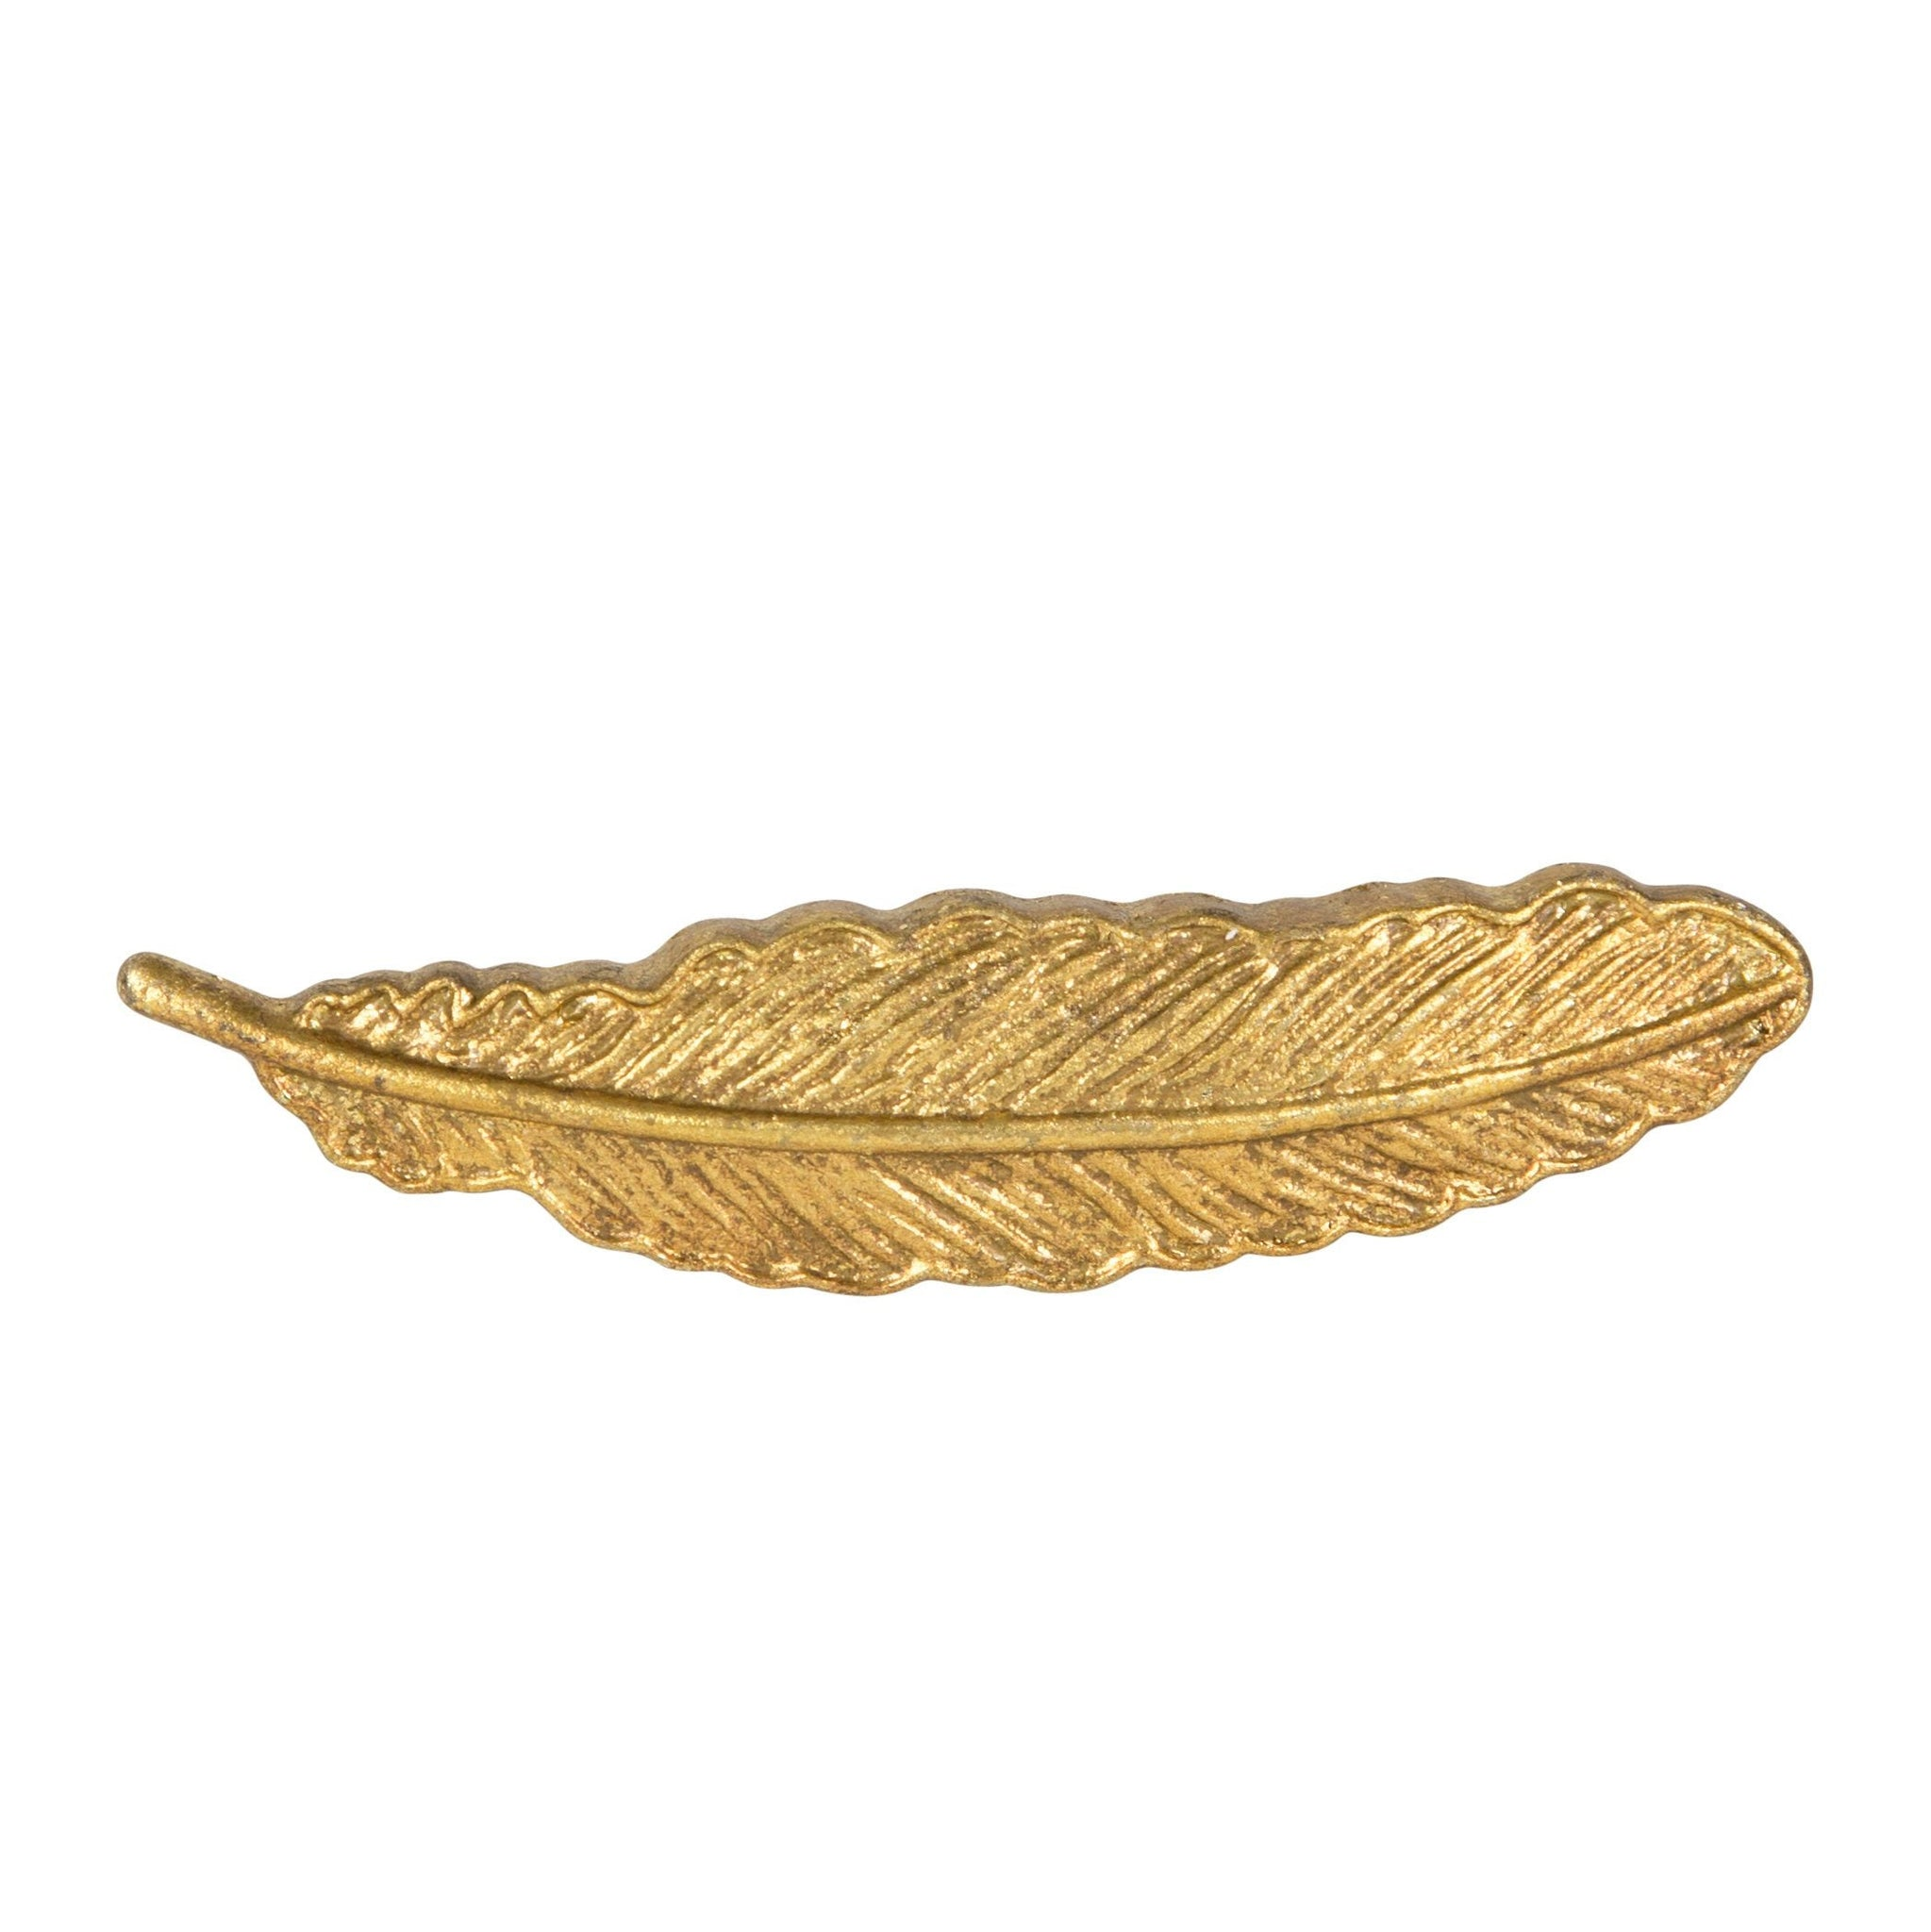 Golden Feather Vintage Drawer Knob Pull Handle